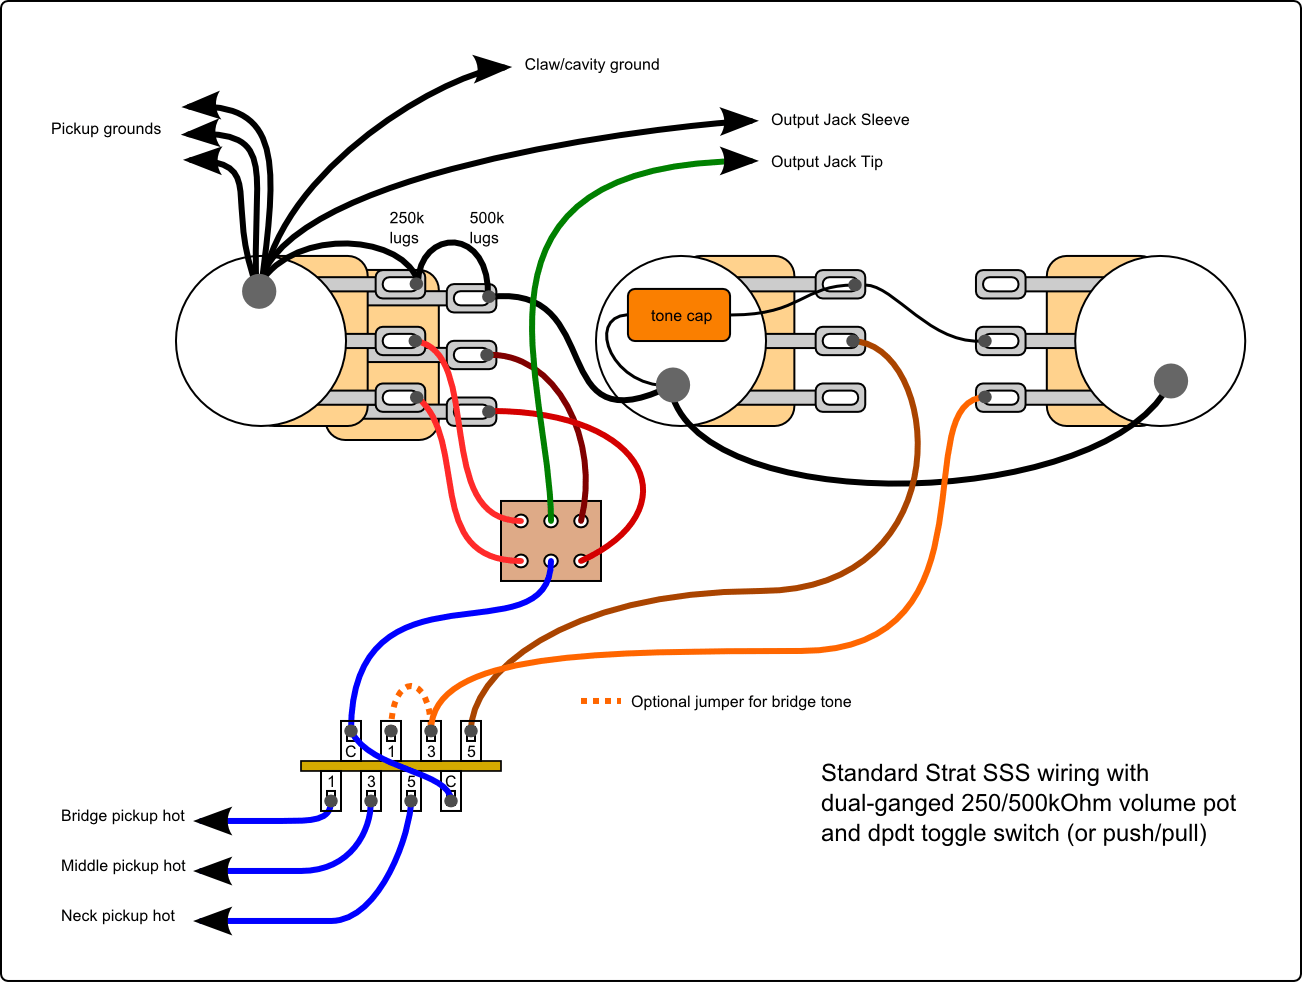 stratocaster wiring diagram 500k pots wiring diagram for rh bestbreweries co fender strat wiring diagram vintage strat wiring diagram [ 1302 x 982 Pixel ]